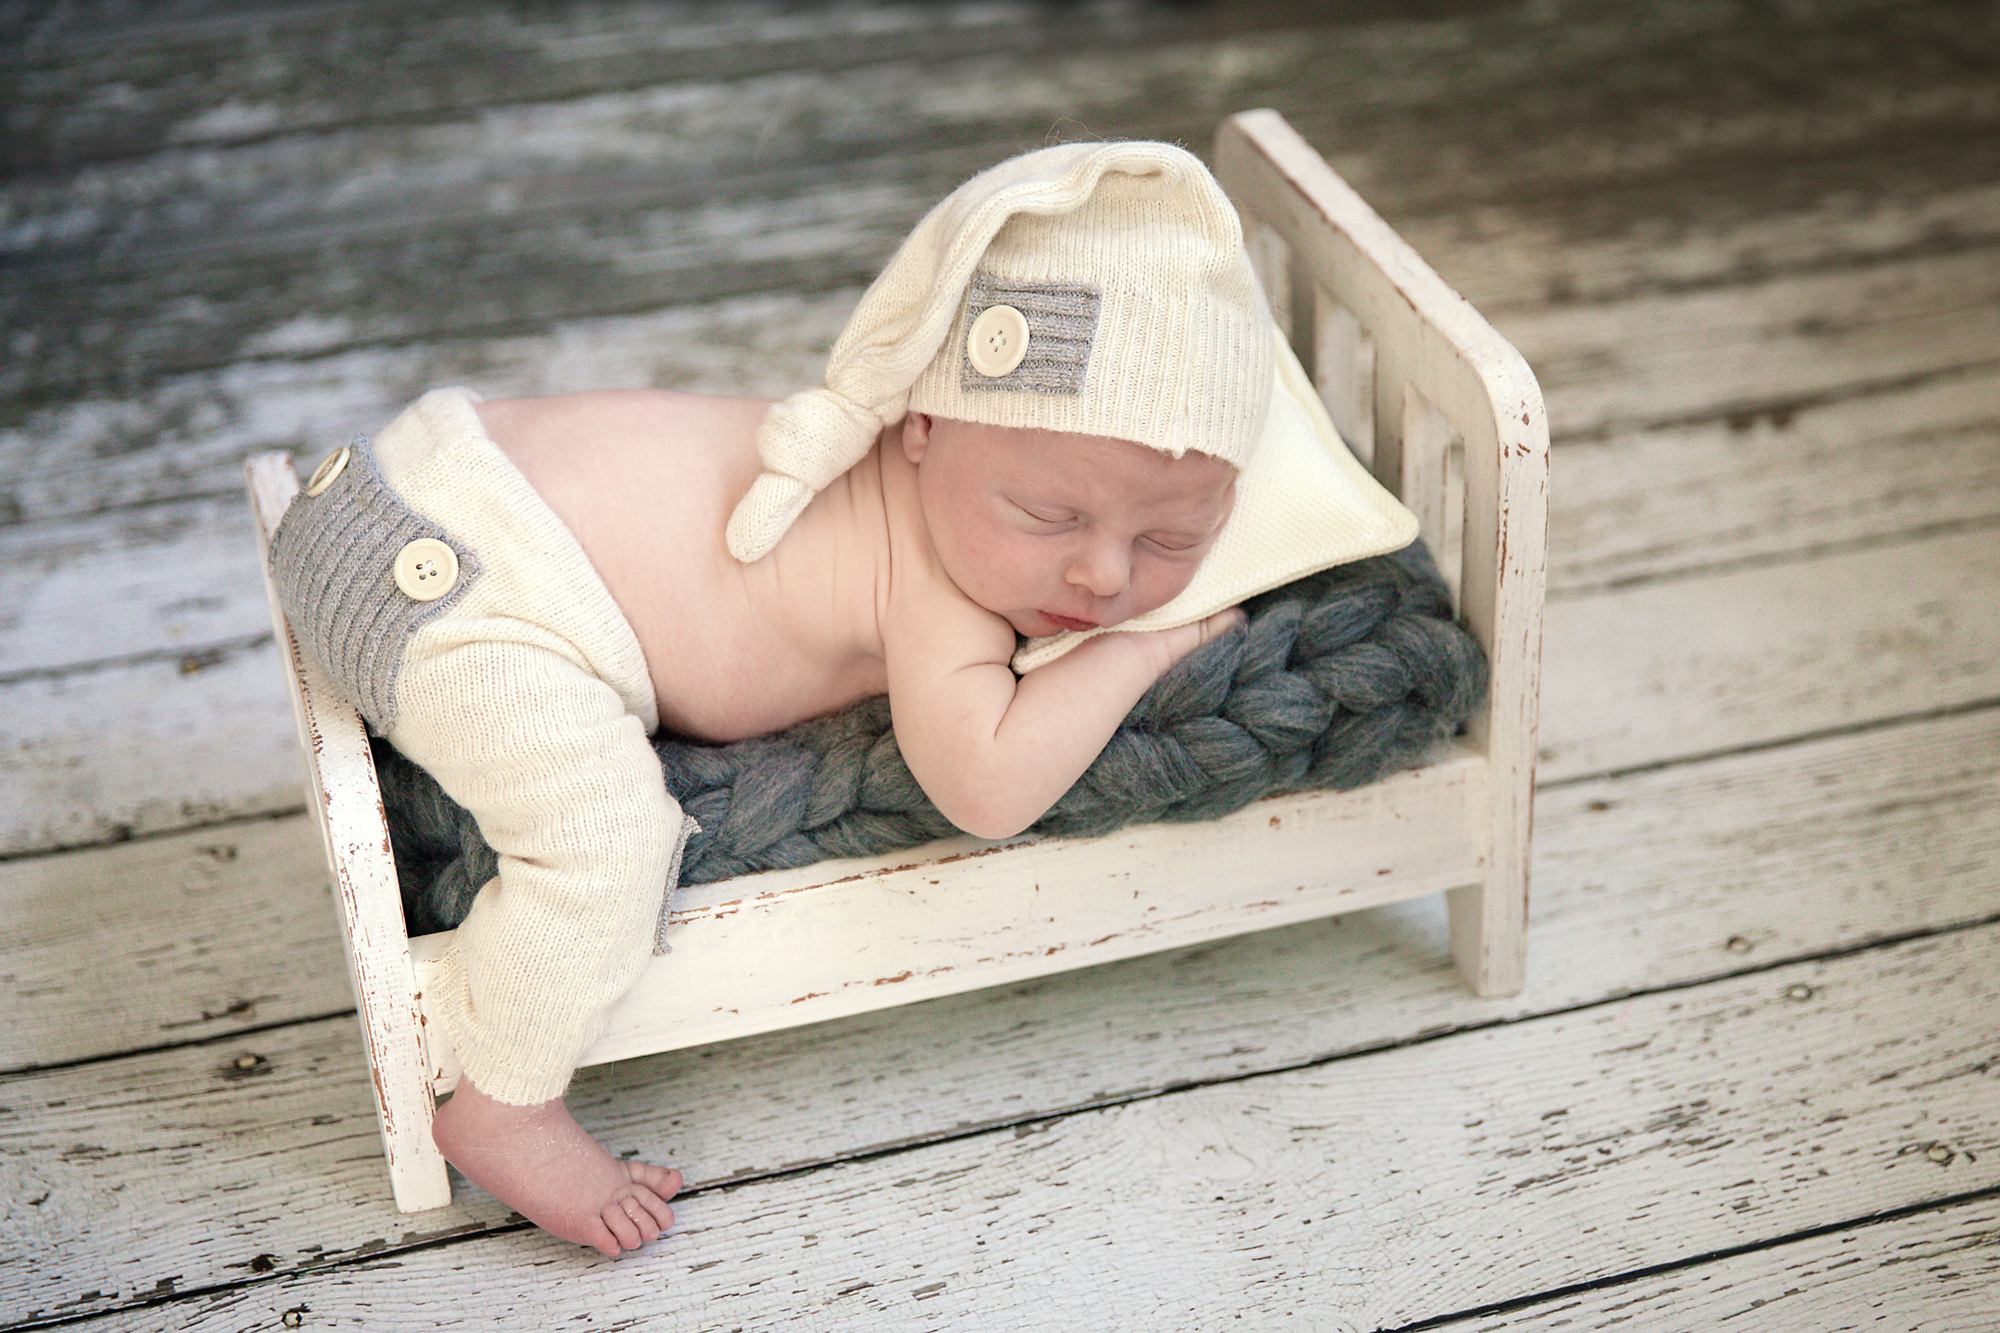 Baby boy is sleeping on an antique wooden bed. Newborn Photoshoot ideas. Calgary and area newborn photographer